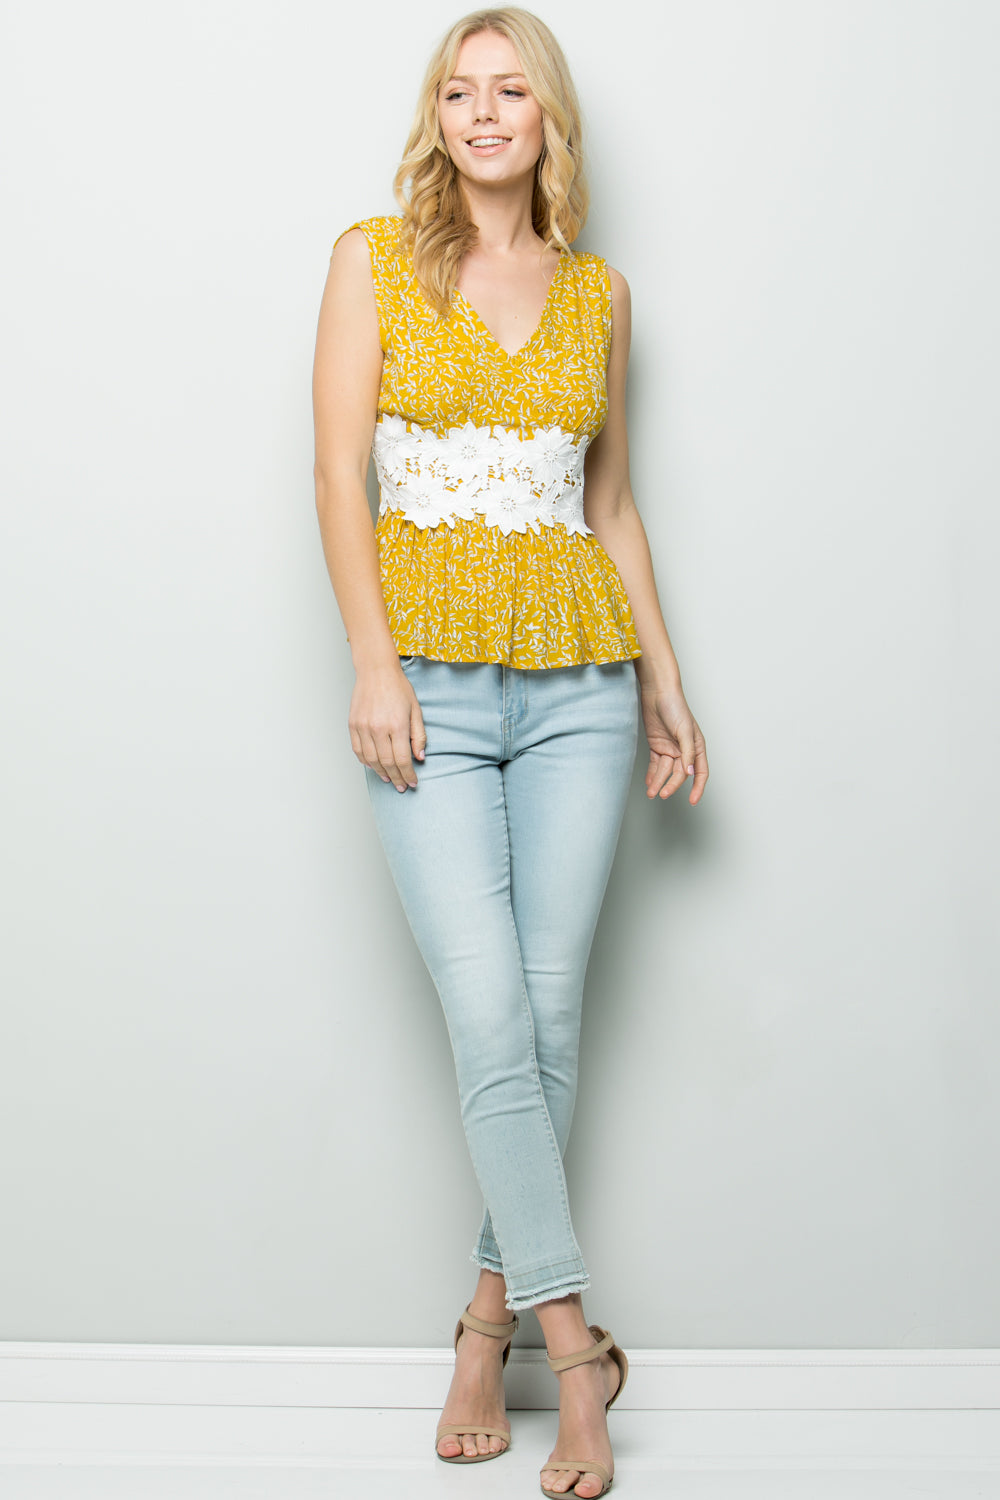 T2646 Floral Sleeveless Top - Yellow